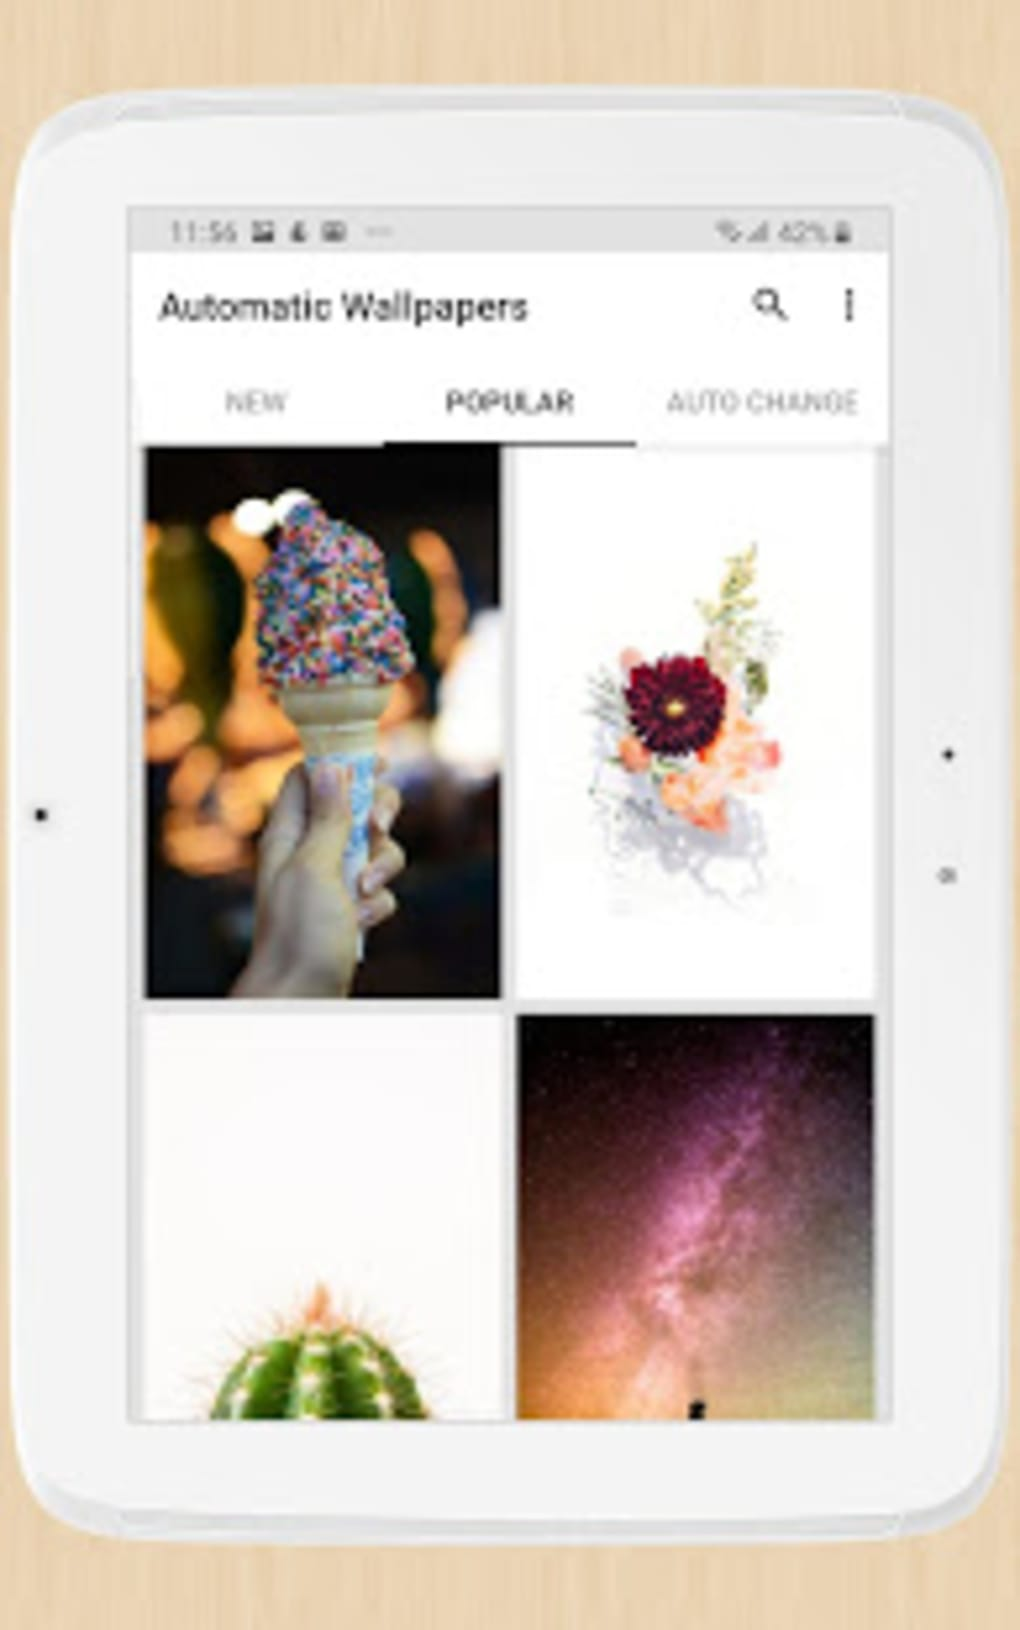 Hd Wallpapers Auto Wallpaper Changer For Android Download